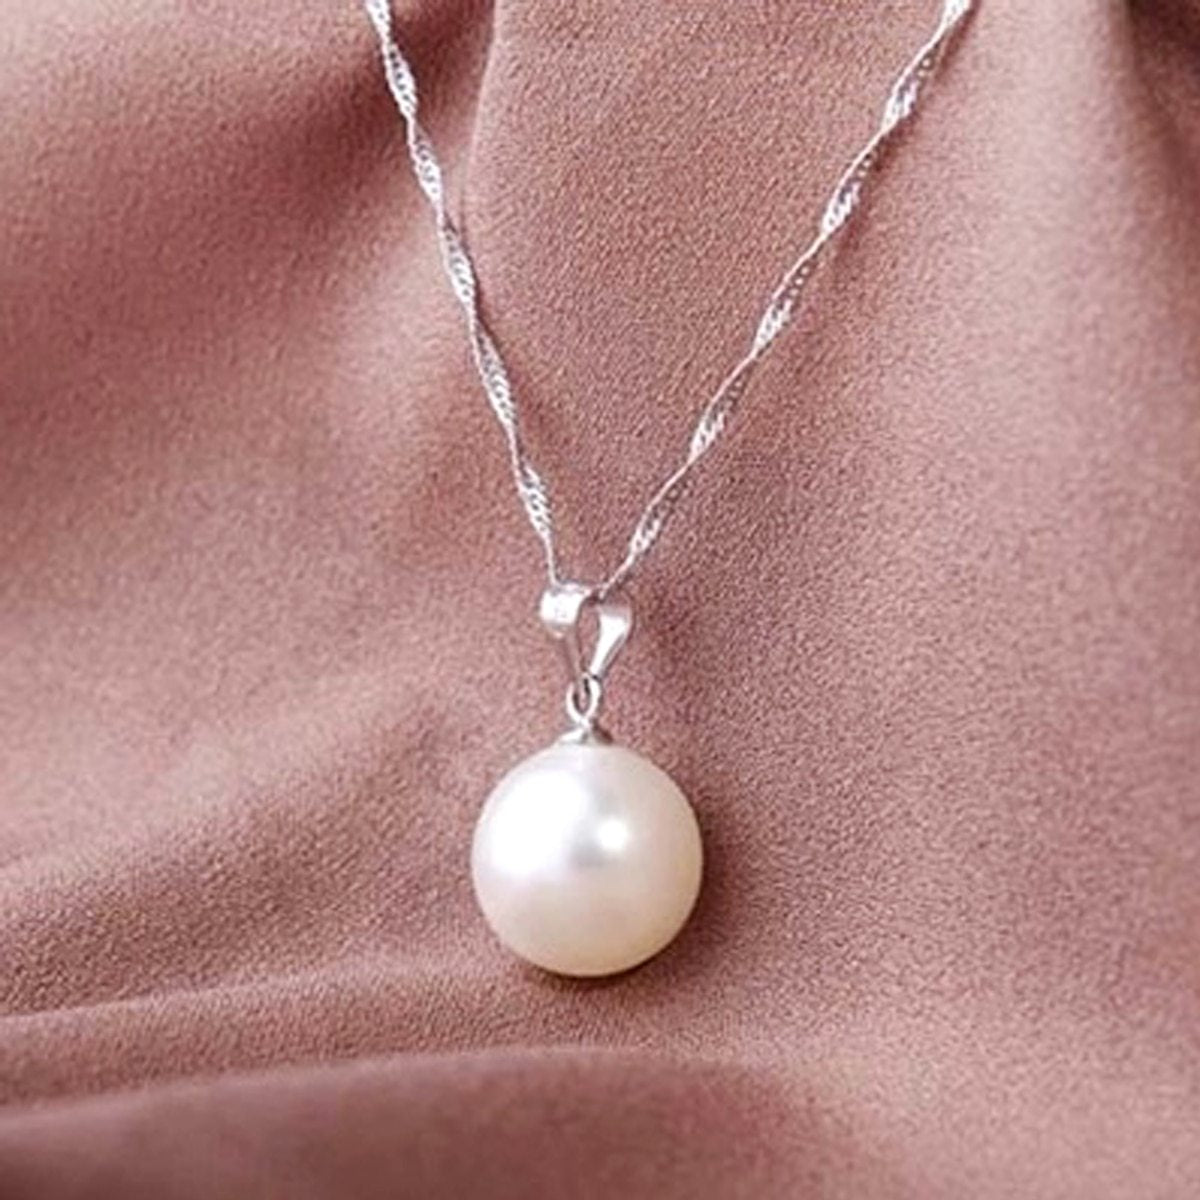 Vintage Love Wish Pearl Chain Necklace White Imitation Pearl Necklace Oysterintothea-intothea